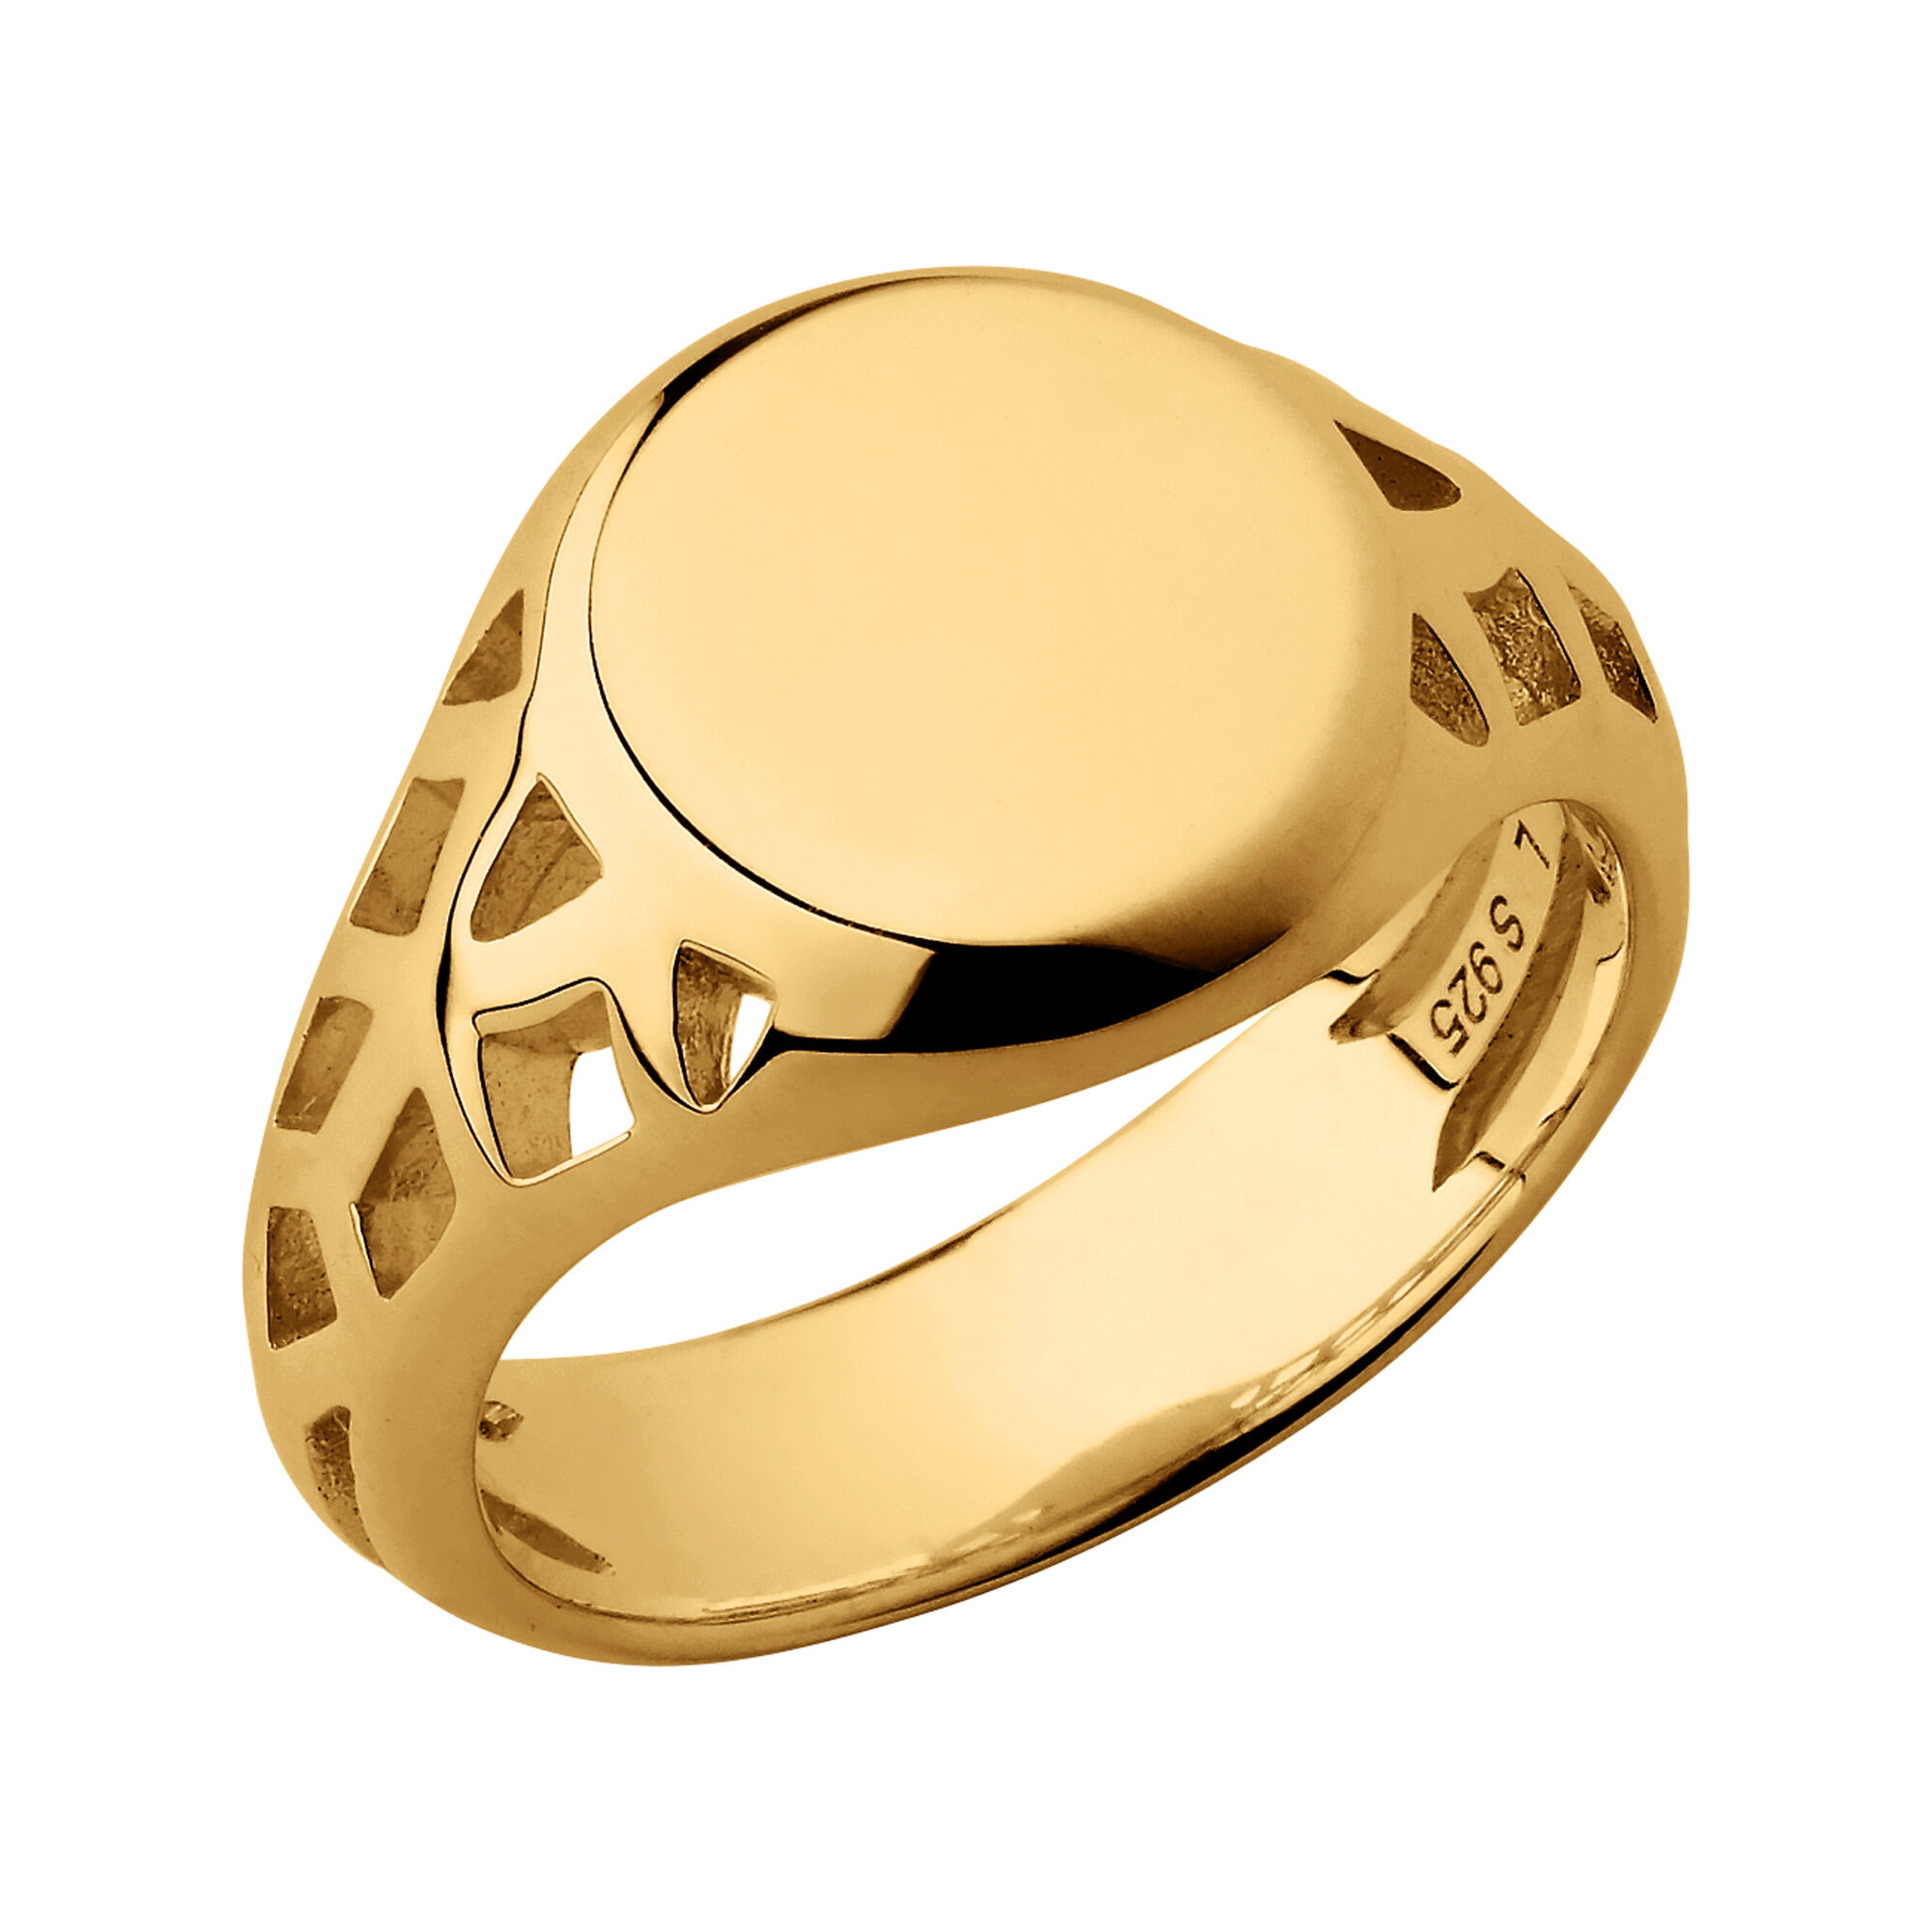 gold jewellery for ring studded product at best tanishq with price yellow buy india finger titan diamond rings design online women floral